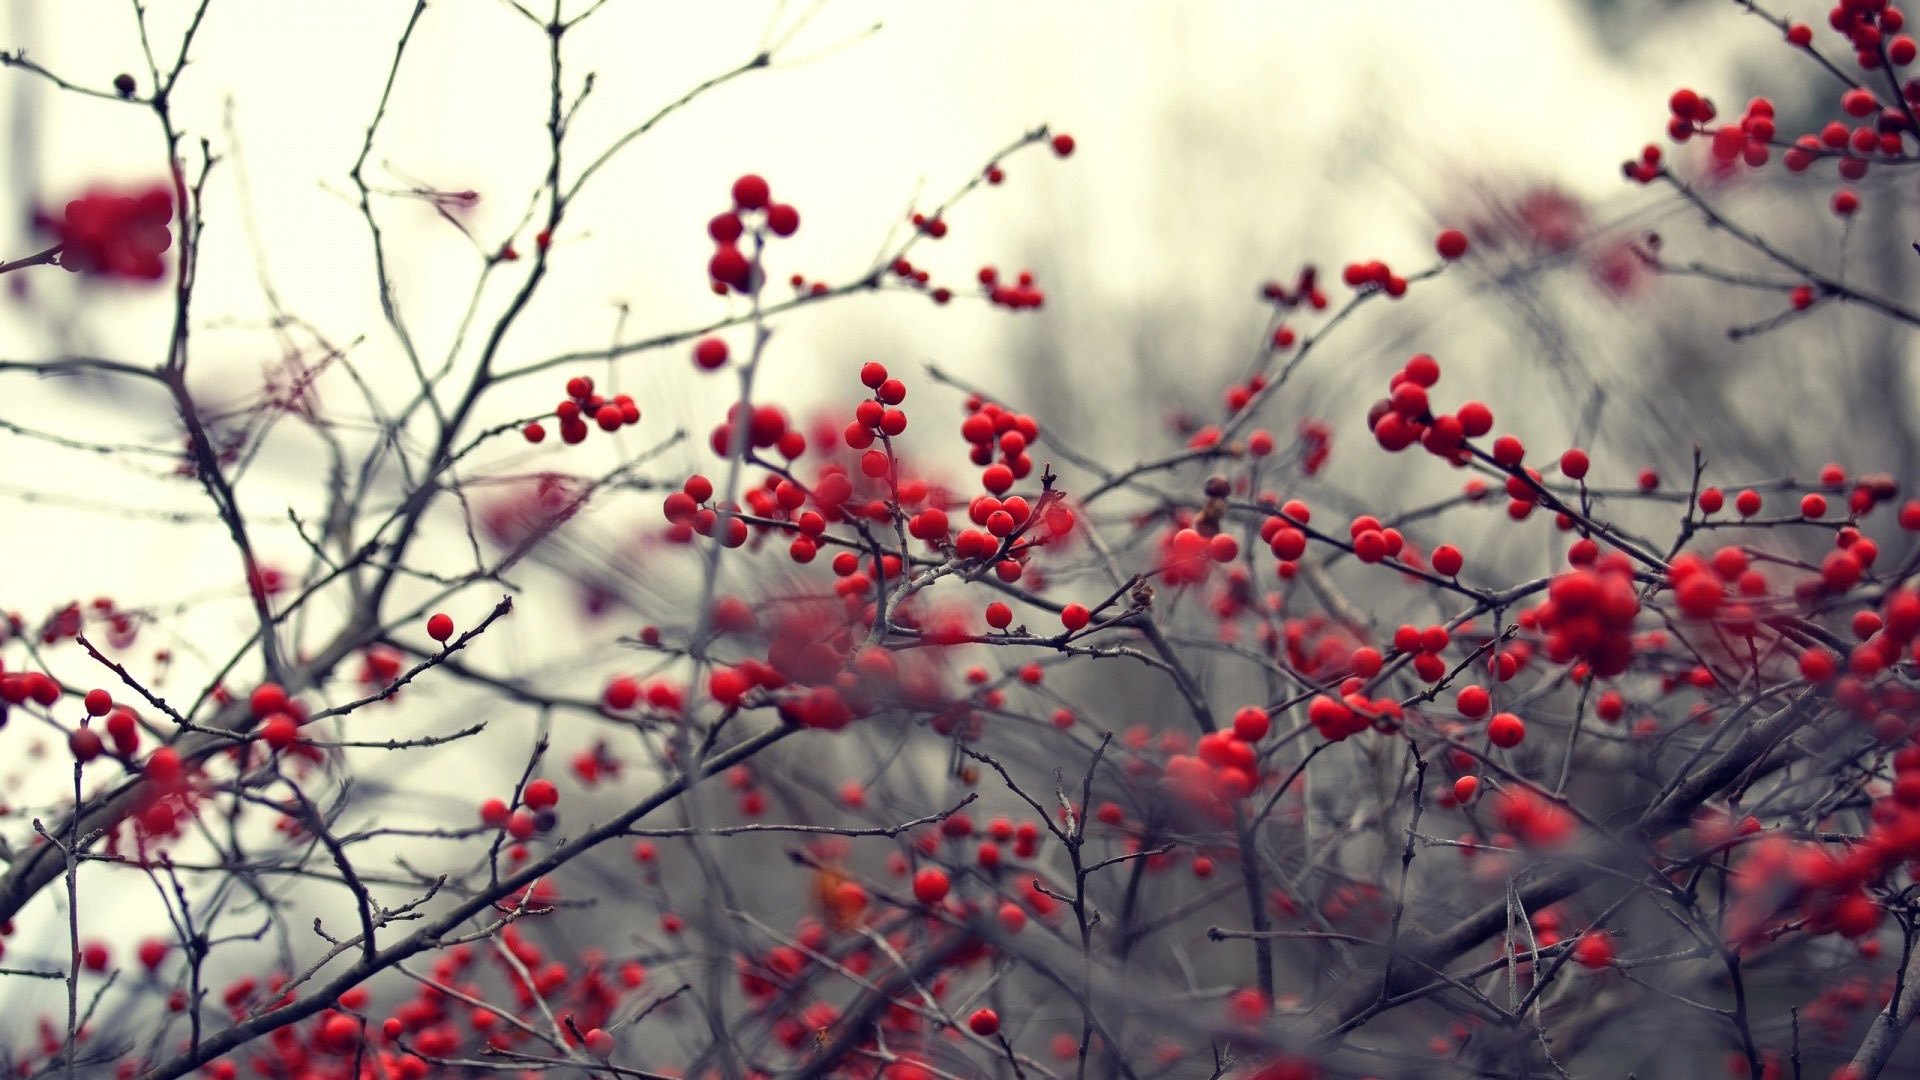 Red berries on branches Wallpaper Original HD Wallpapers 1920x1080